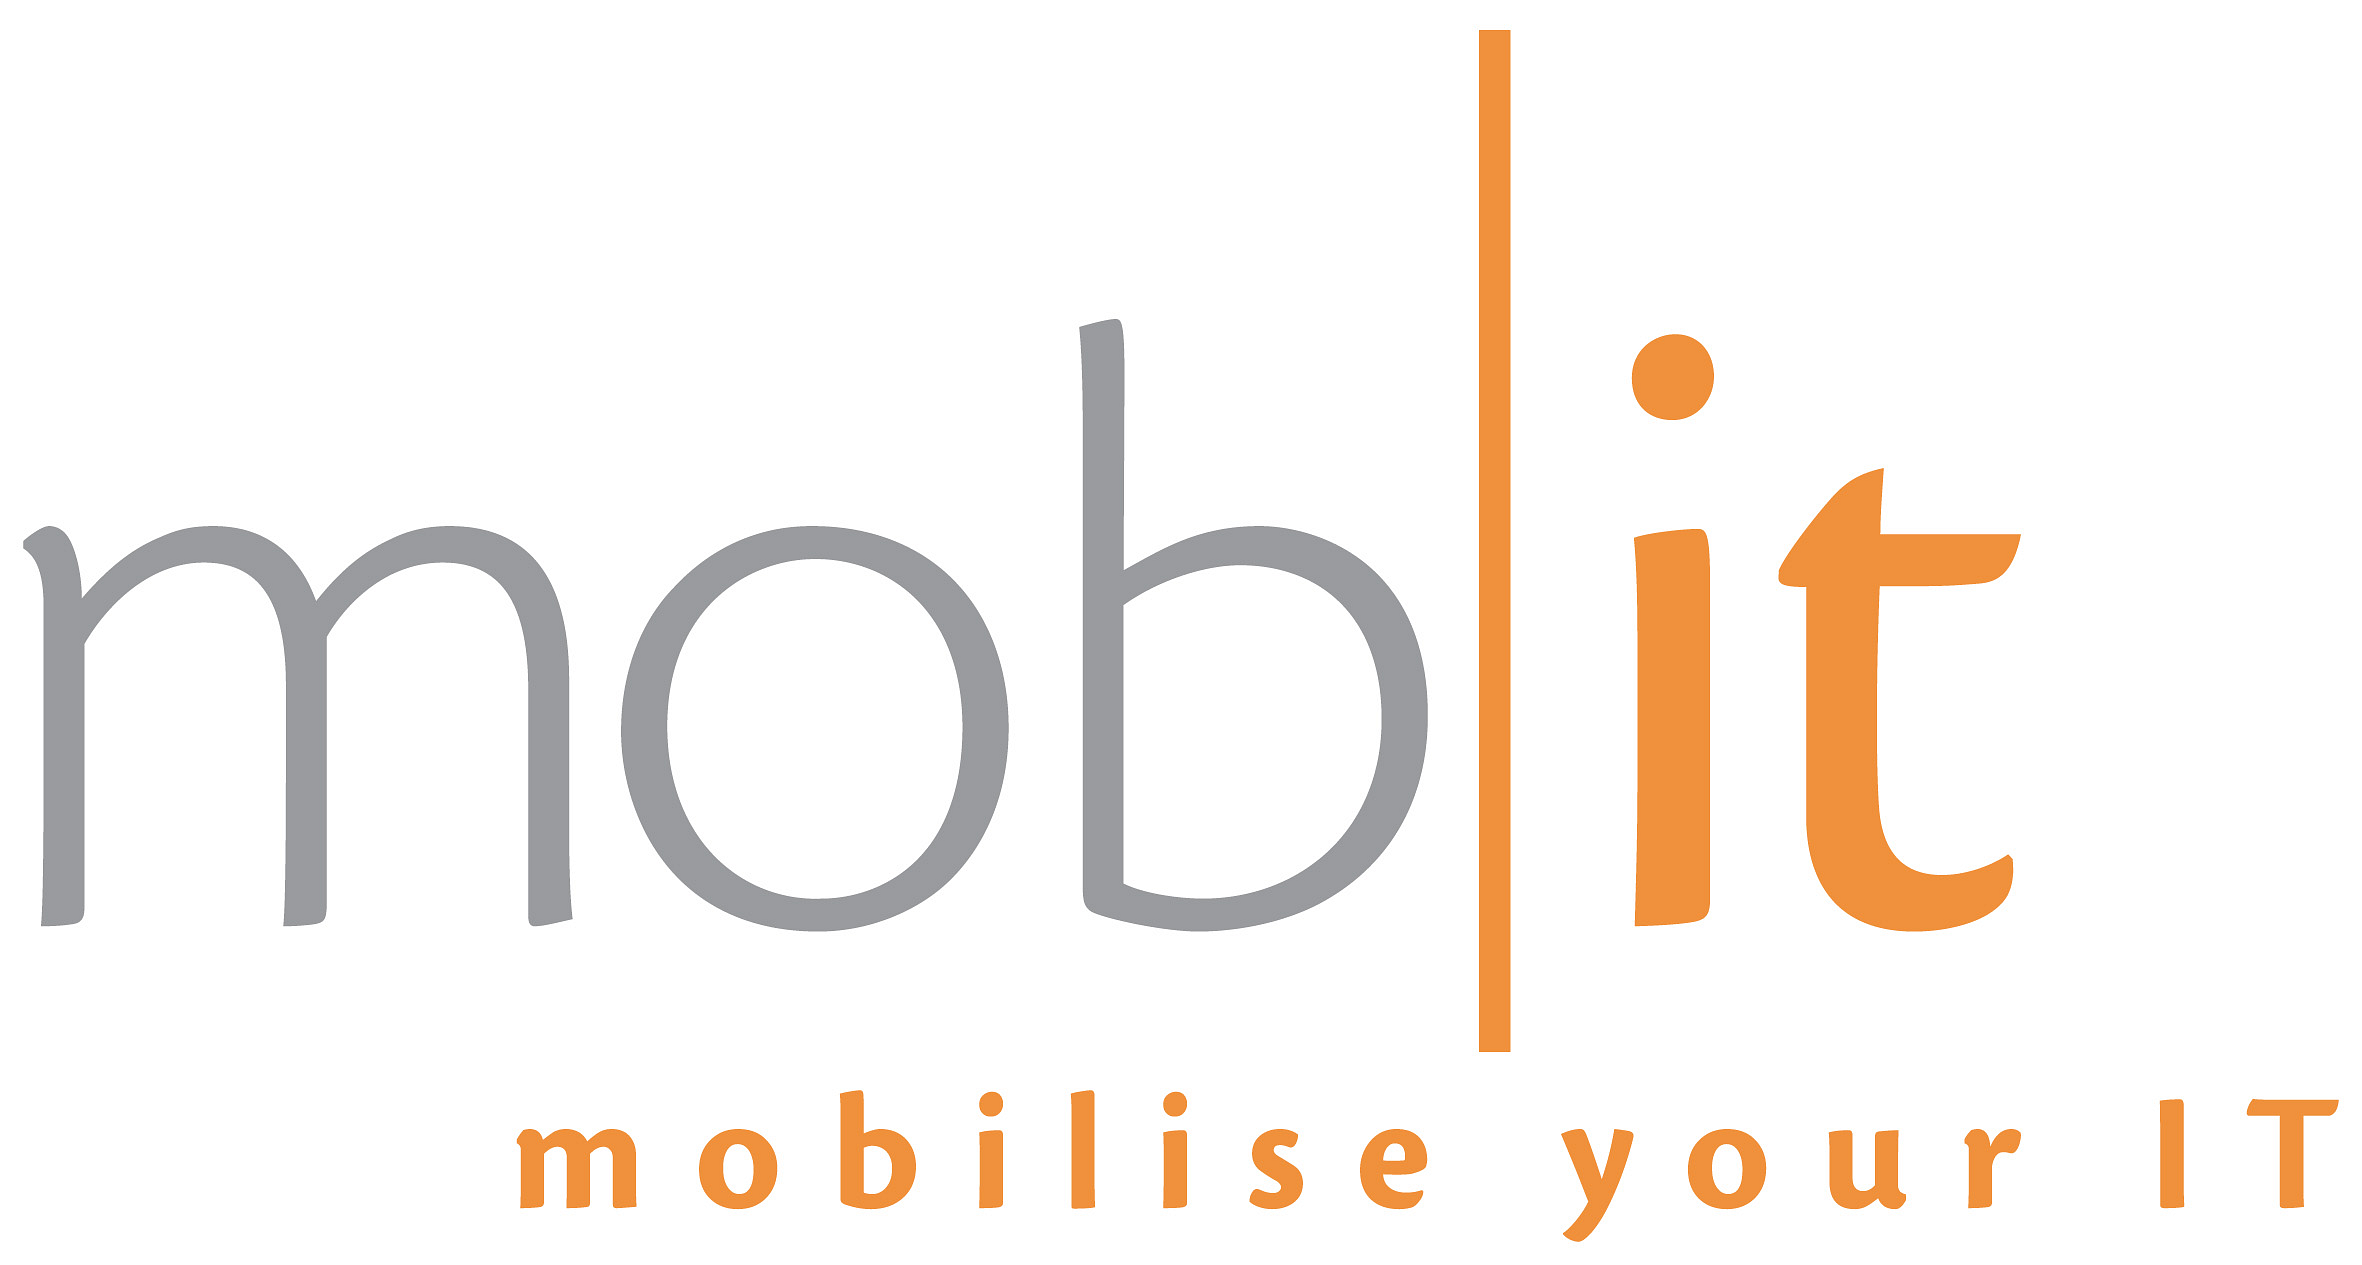 mobit sa: mobit mobilise your IT